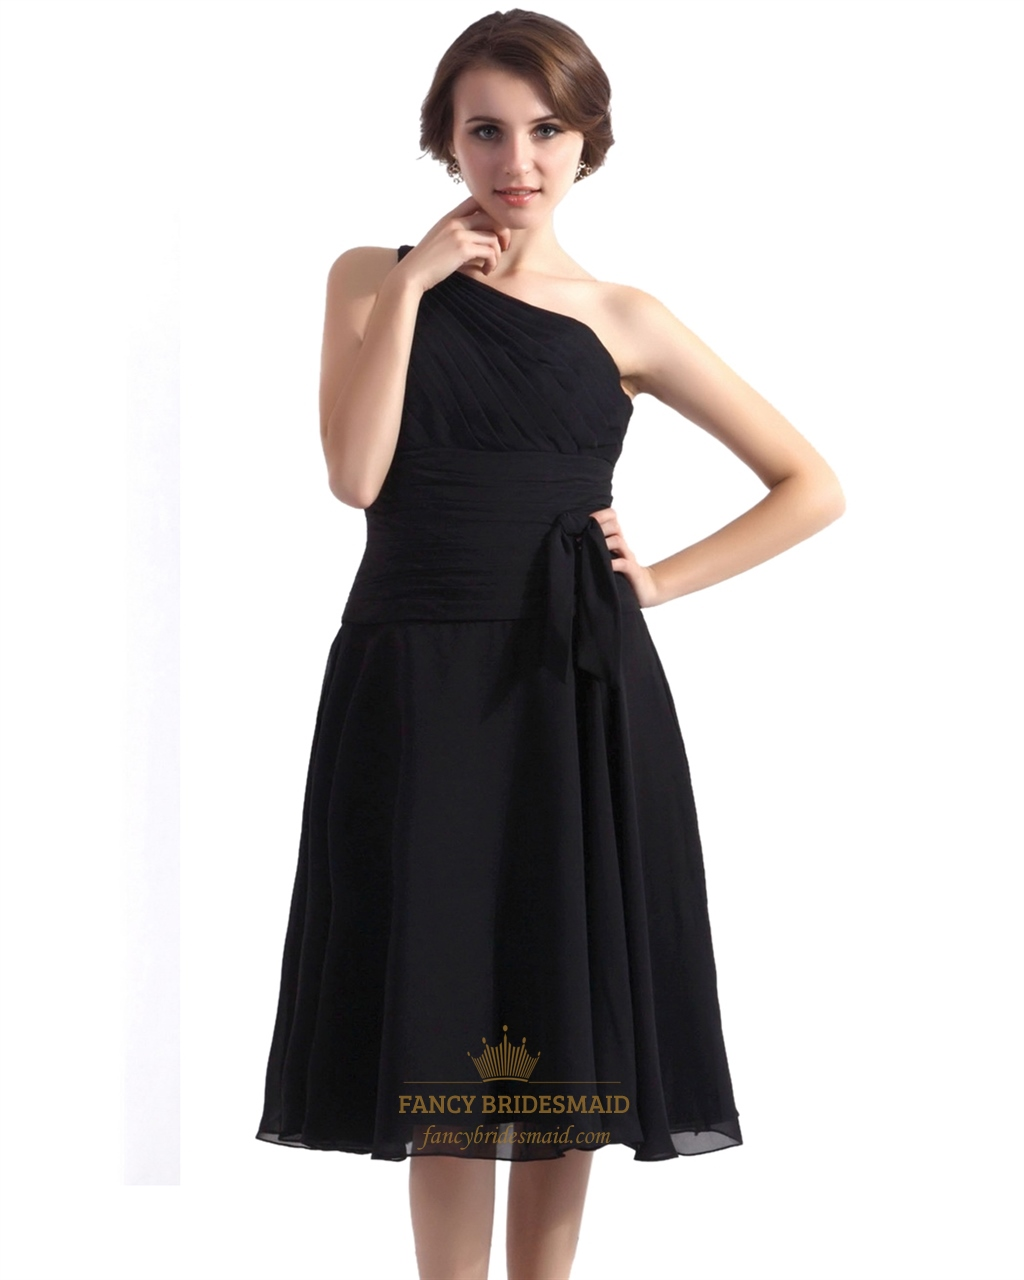 Black A Line Tea Length One Shoulder Dropped Waist Cocktail Dress | Fancy Bridesmaid Dresses